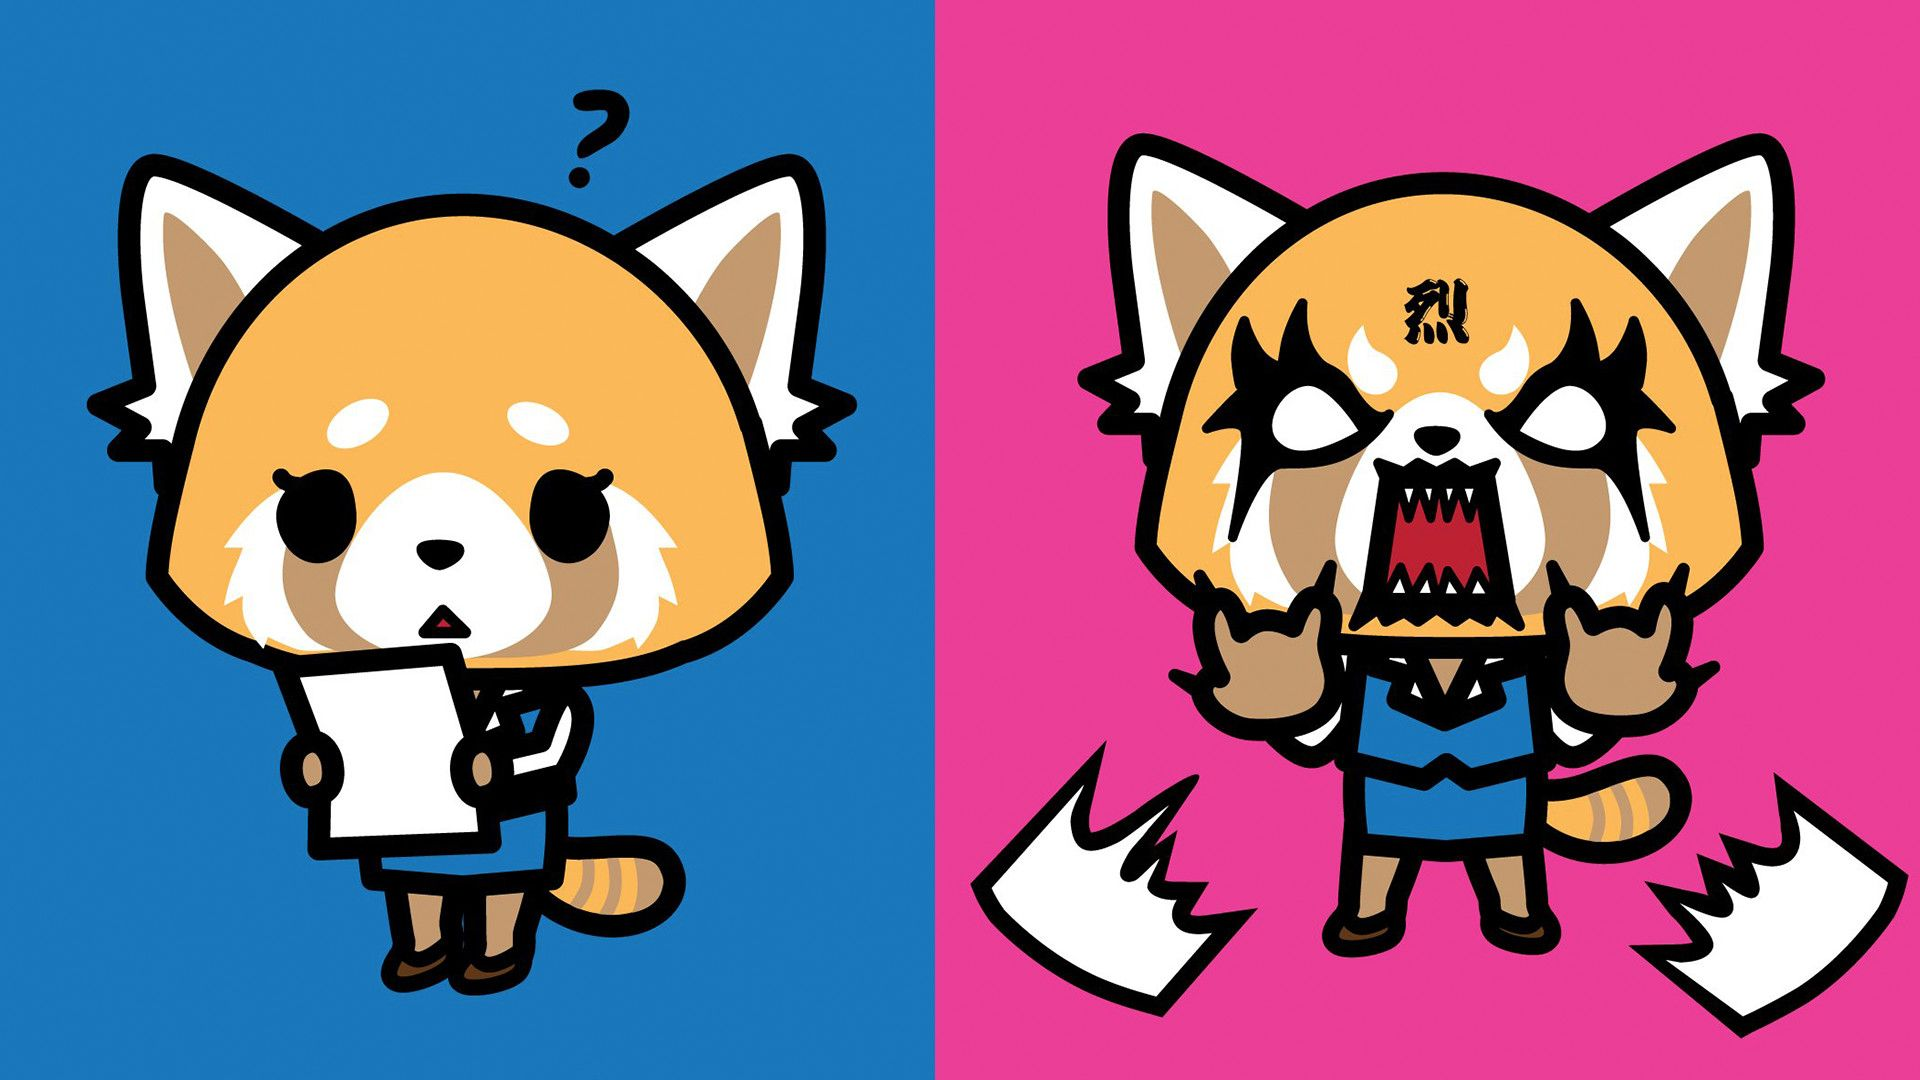 download Aggretsuko Wallpapers Top Aggretsuko Backgrounds 1920x1080